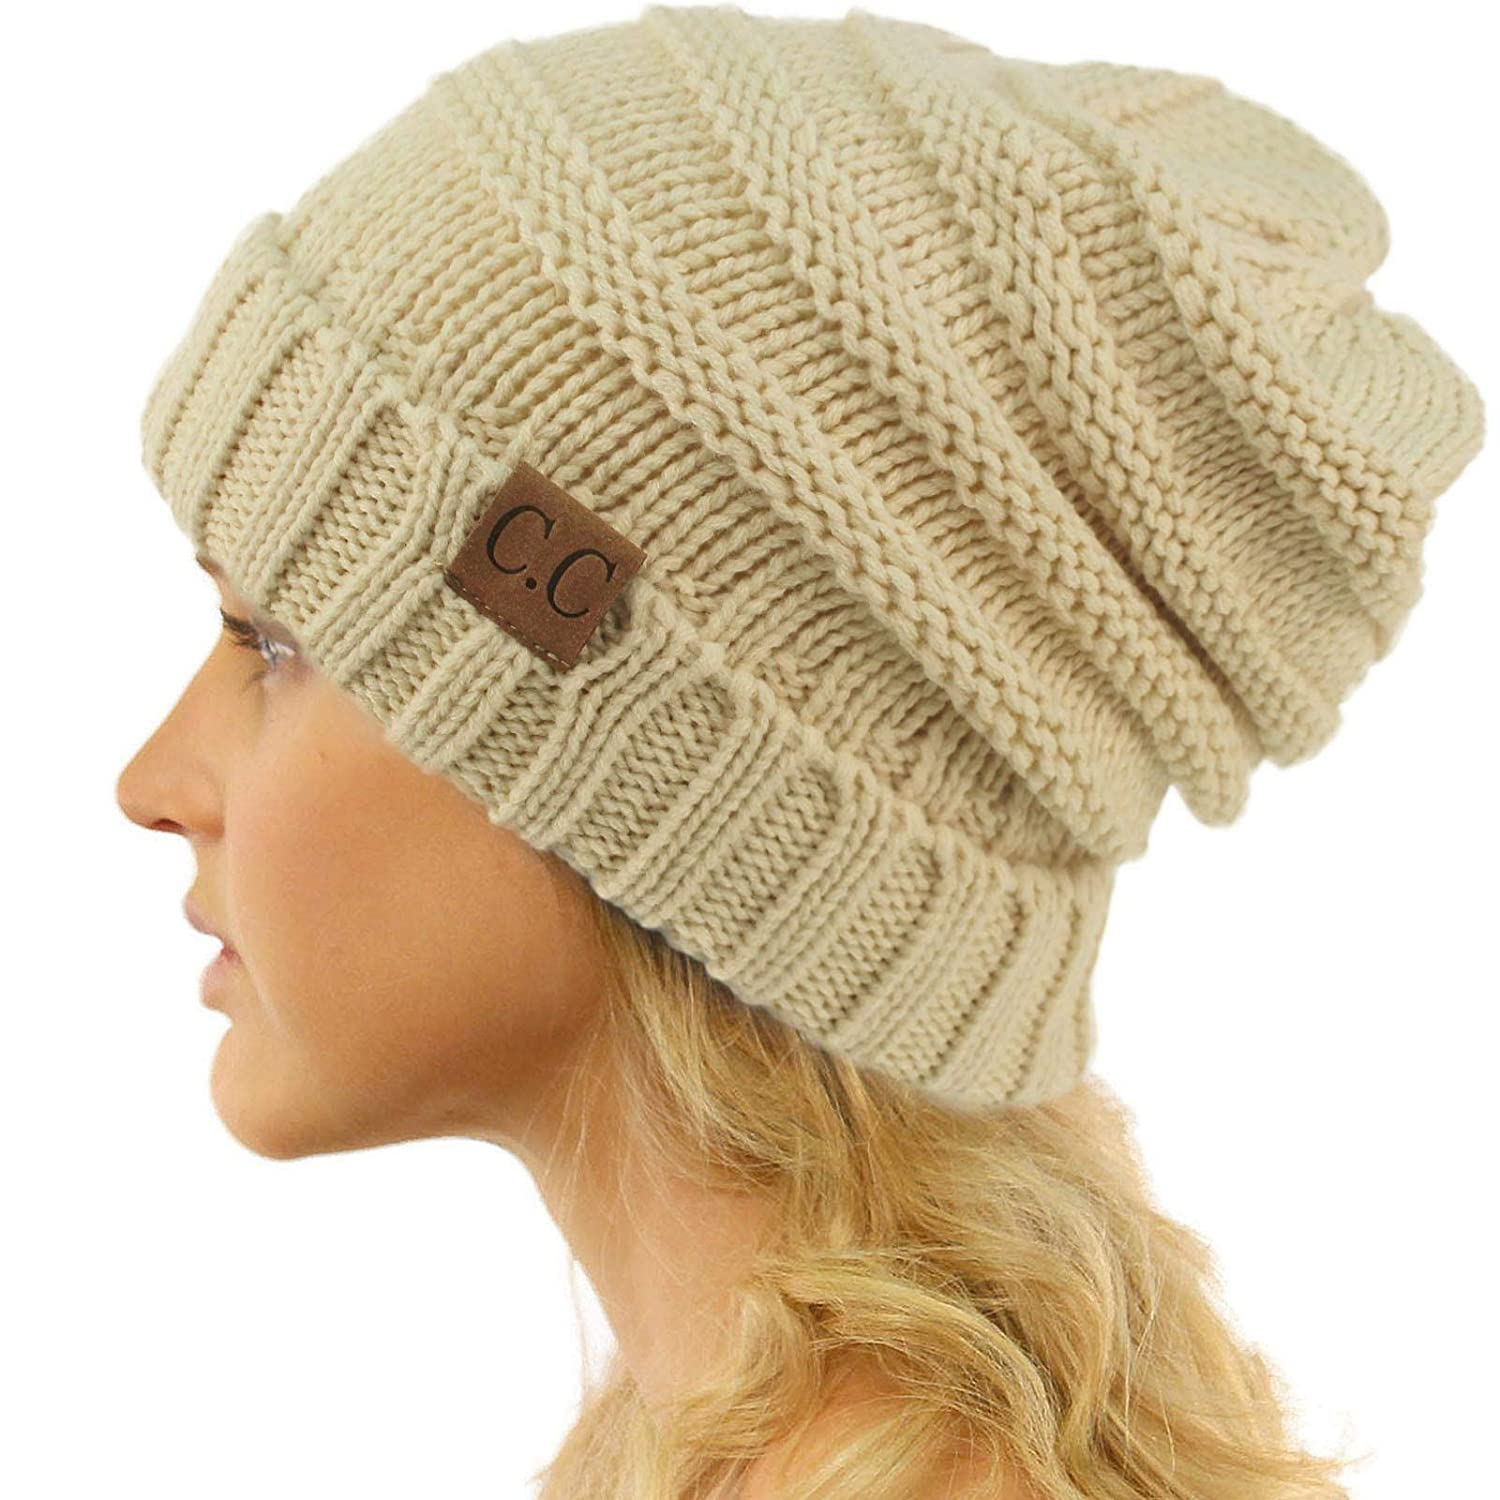 43170ff7a62 Replacement for CC Winter Trendy Warm Oversized Chunky Baggy Stretchy  Slouchy Skully Beanie Hat Beige at Amazon Women s Clothing store